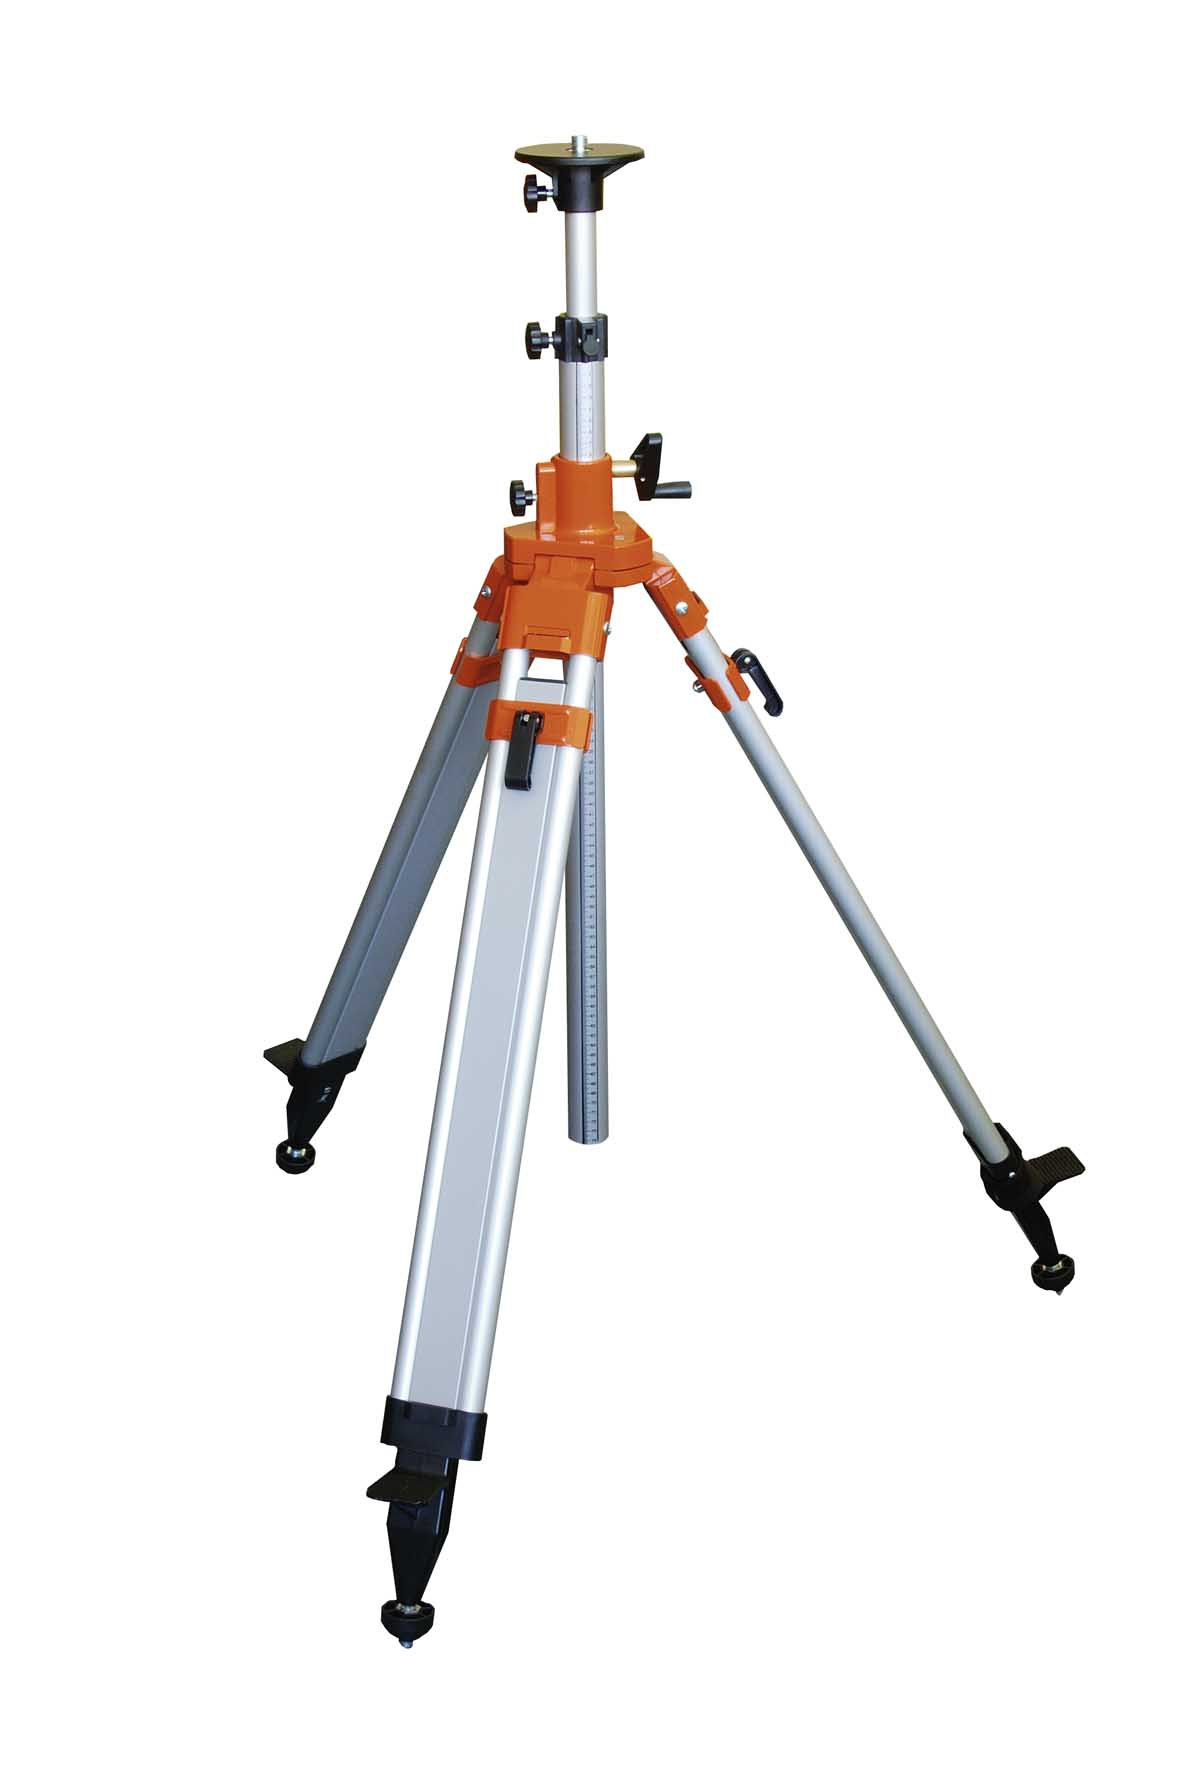 NEDO Heavy-Duty Elevating Tripod 210670-185